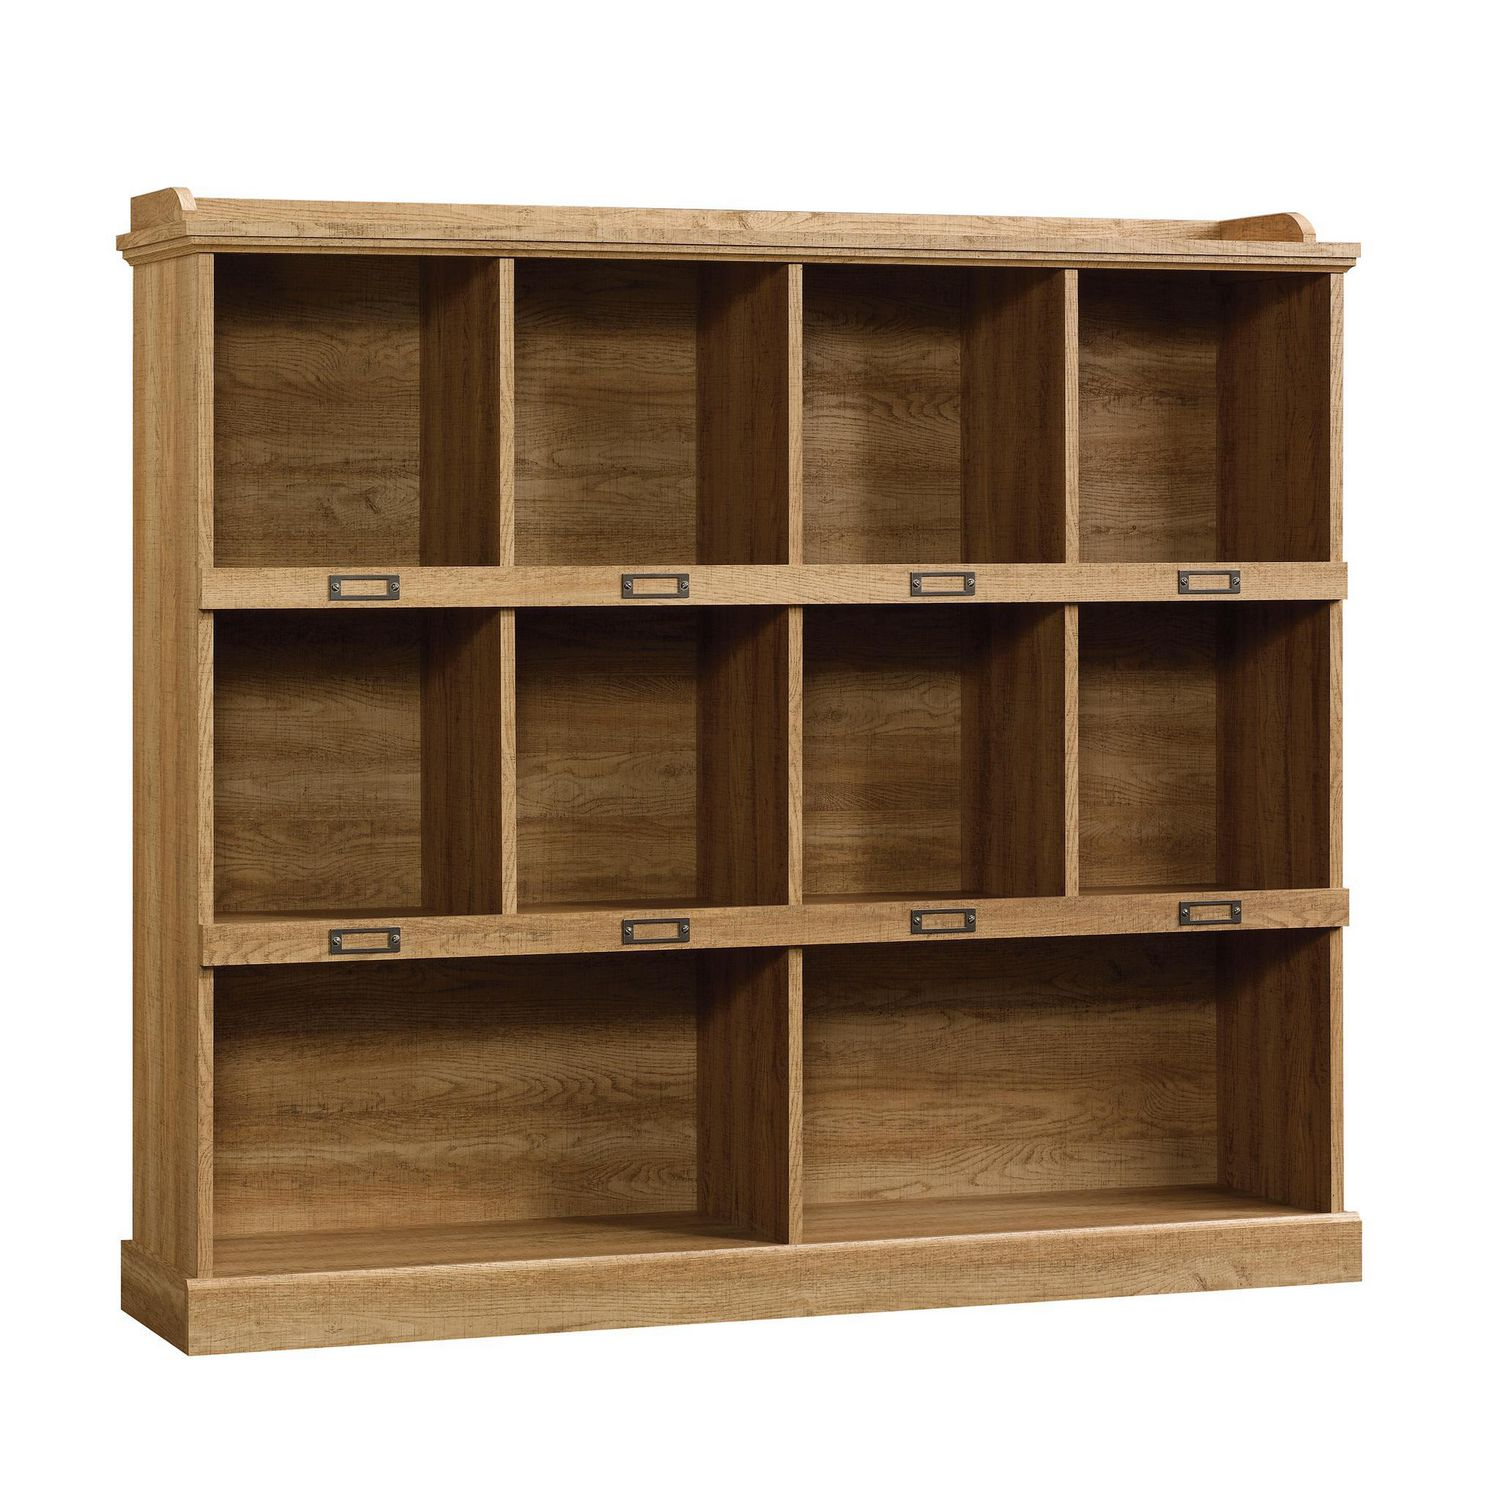 Sauder Barrister Lane Collection Bookcase Scribed Oak 414724